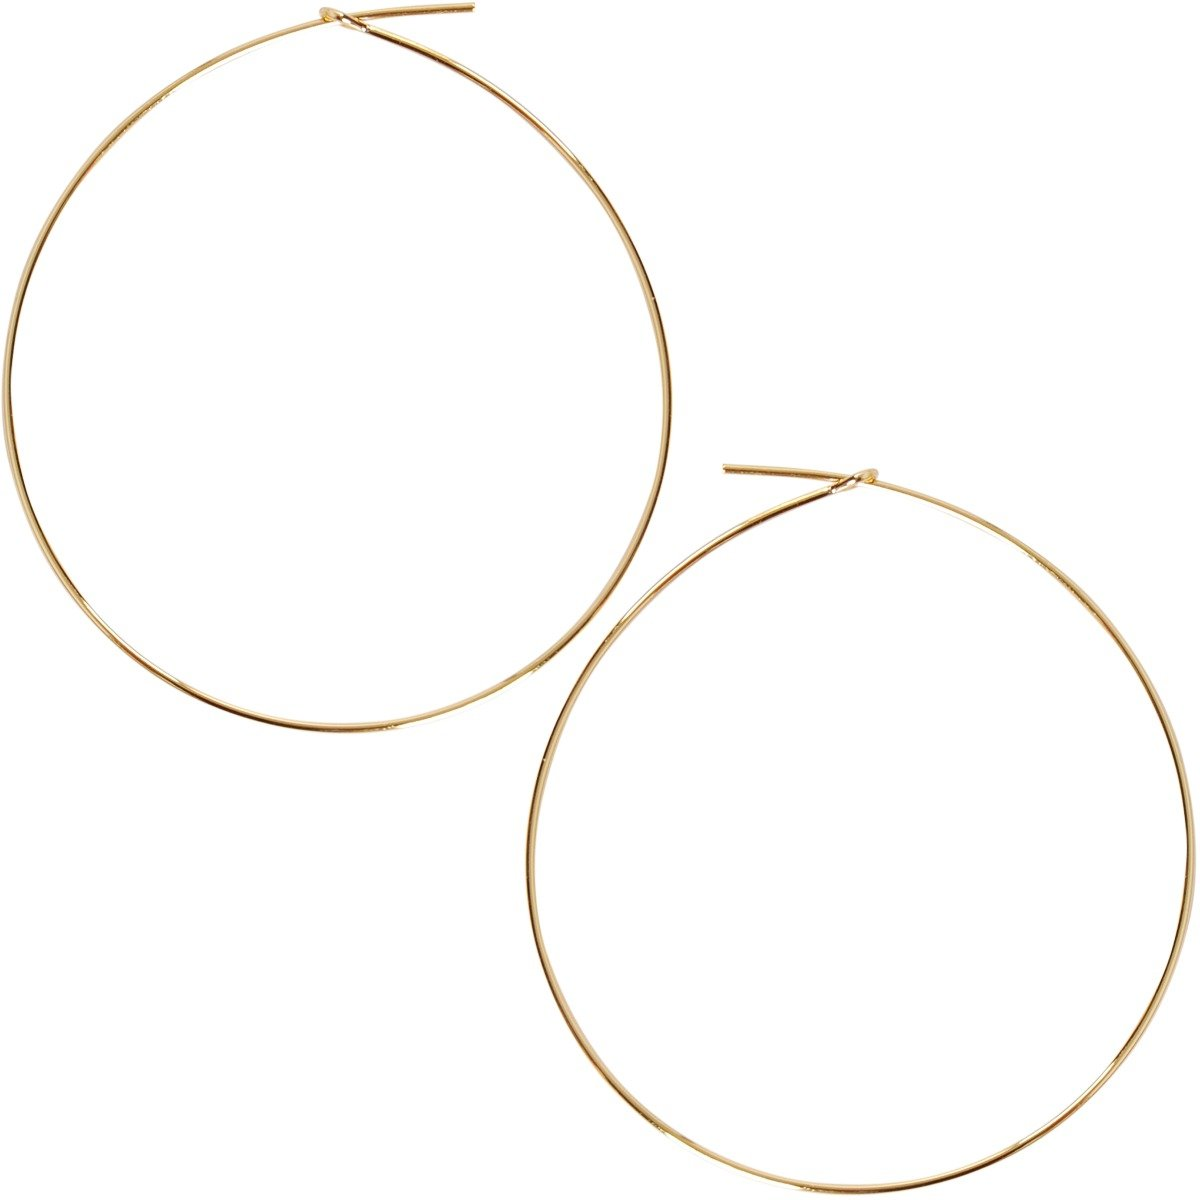 Humble Chic Round Hoop Earrings - Hypoallergenic Lightweight Wire Threader Loop Drop Dangles for Women, Safe for Sensitive Ears, Large 18K Yellow, Gold-Electroplated, 2''